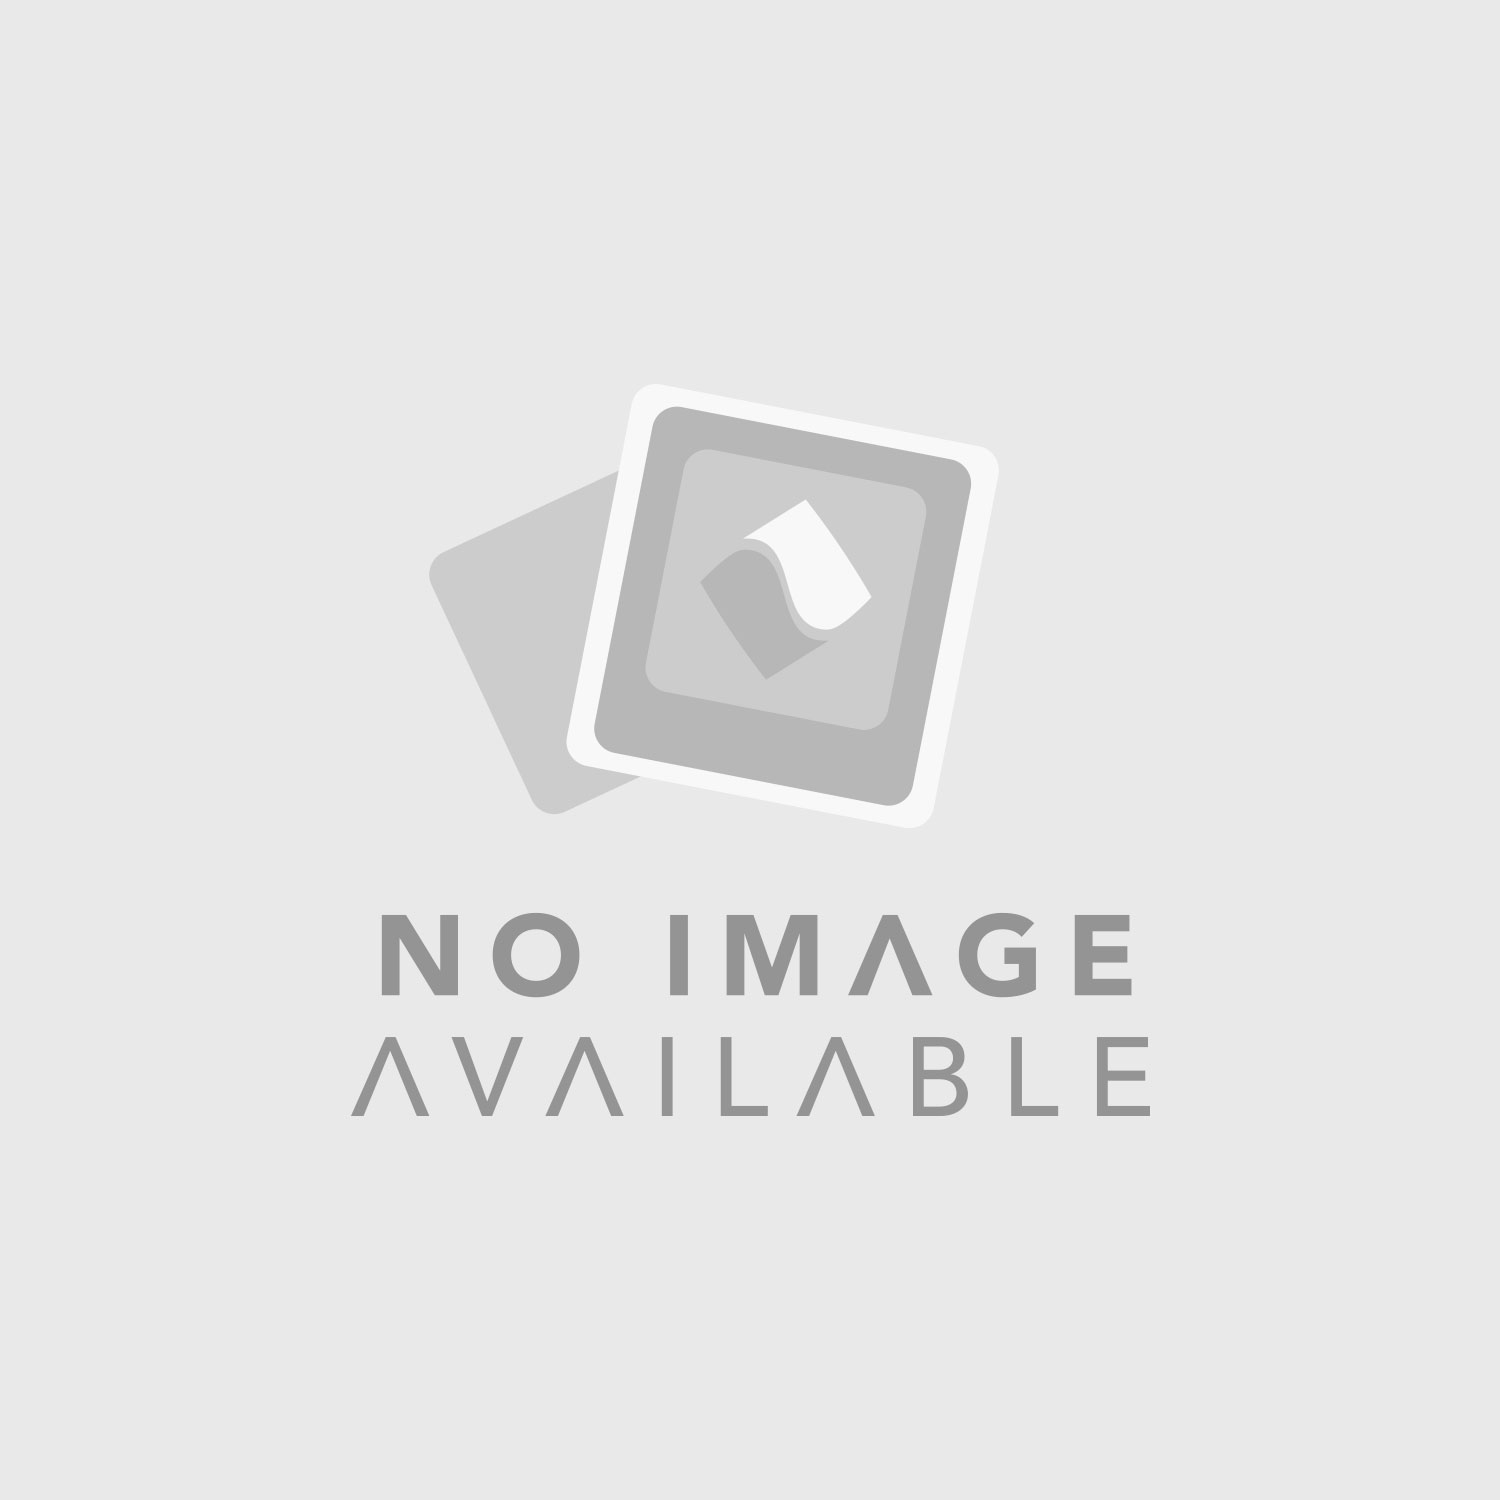 Yamaha HS8I 2-Way Bi-Amp Powered Studio Monitor (Single, Black)